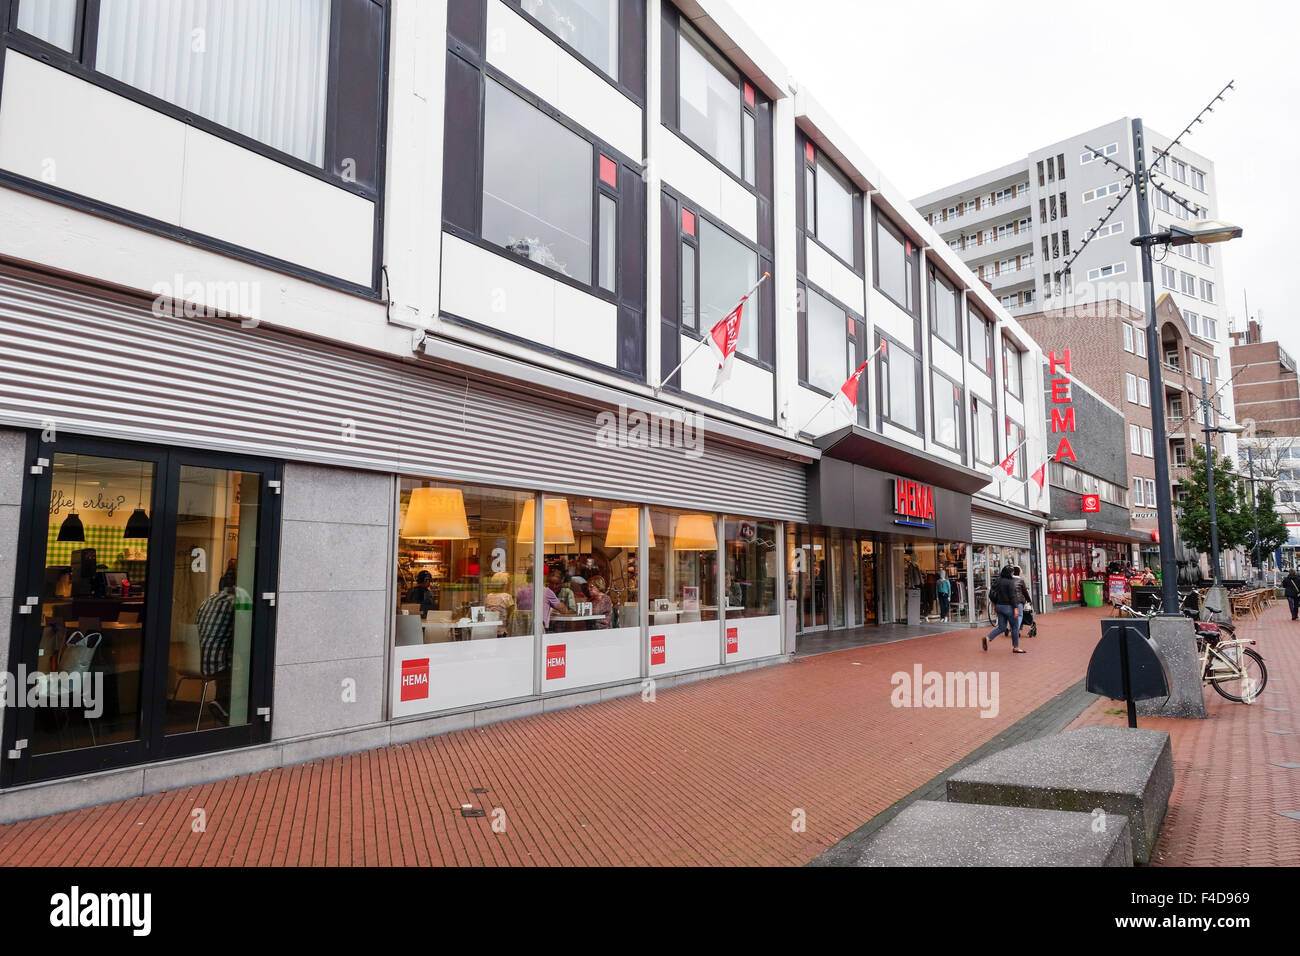 Hema department store building, Brunssum, Netherlands Stock